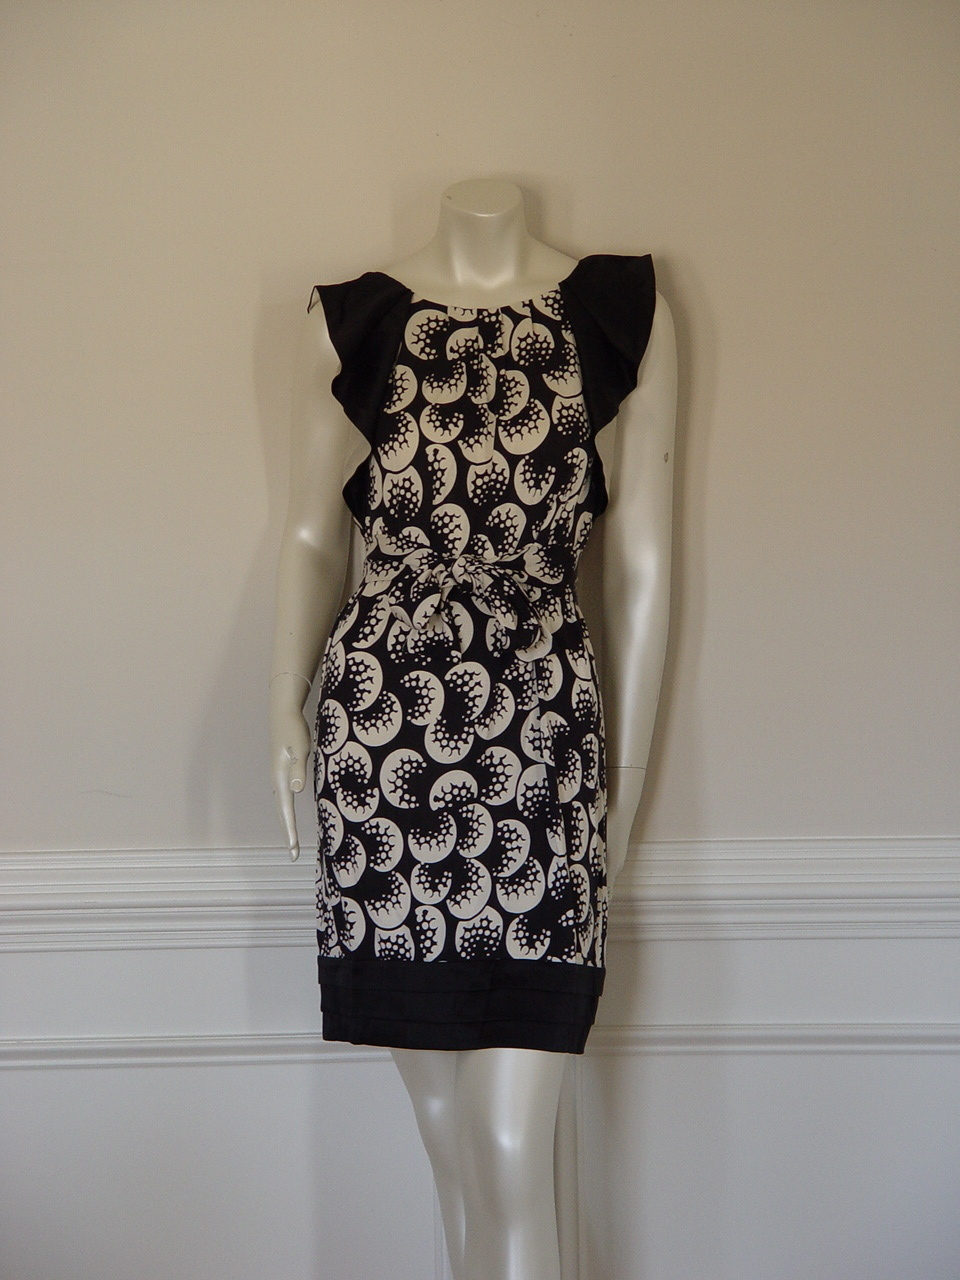 DIANE von FURSTENBERG HAYTAN BUBBLE MOONS DRESS - US 6 - UK 10